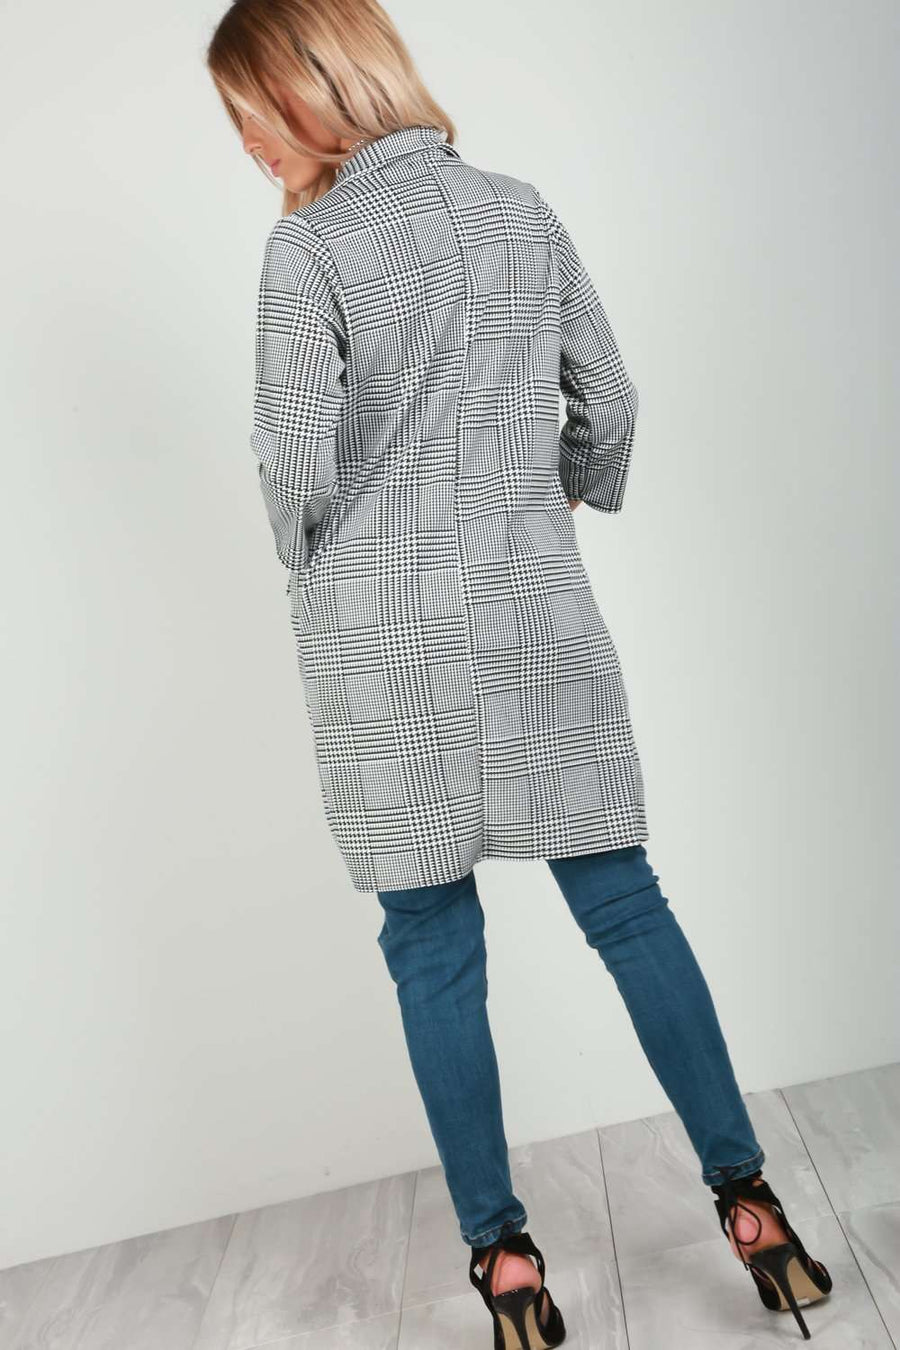 Lottie Monochrome Check Long Line Jacket - bejealous-com